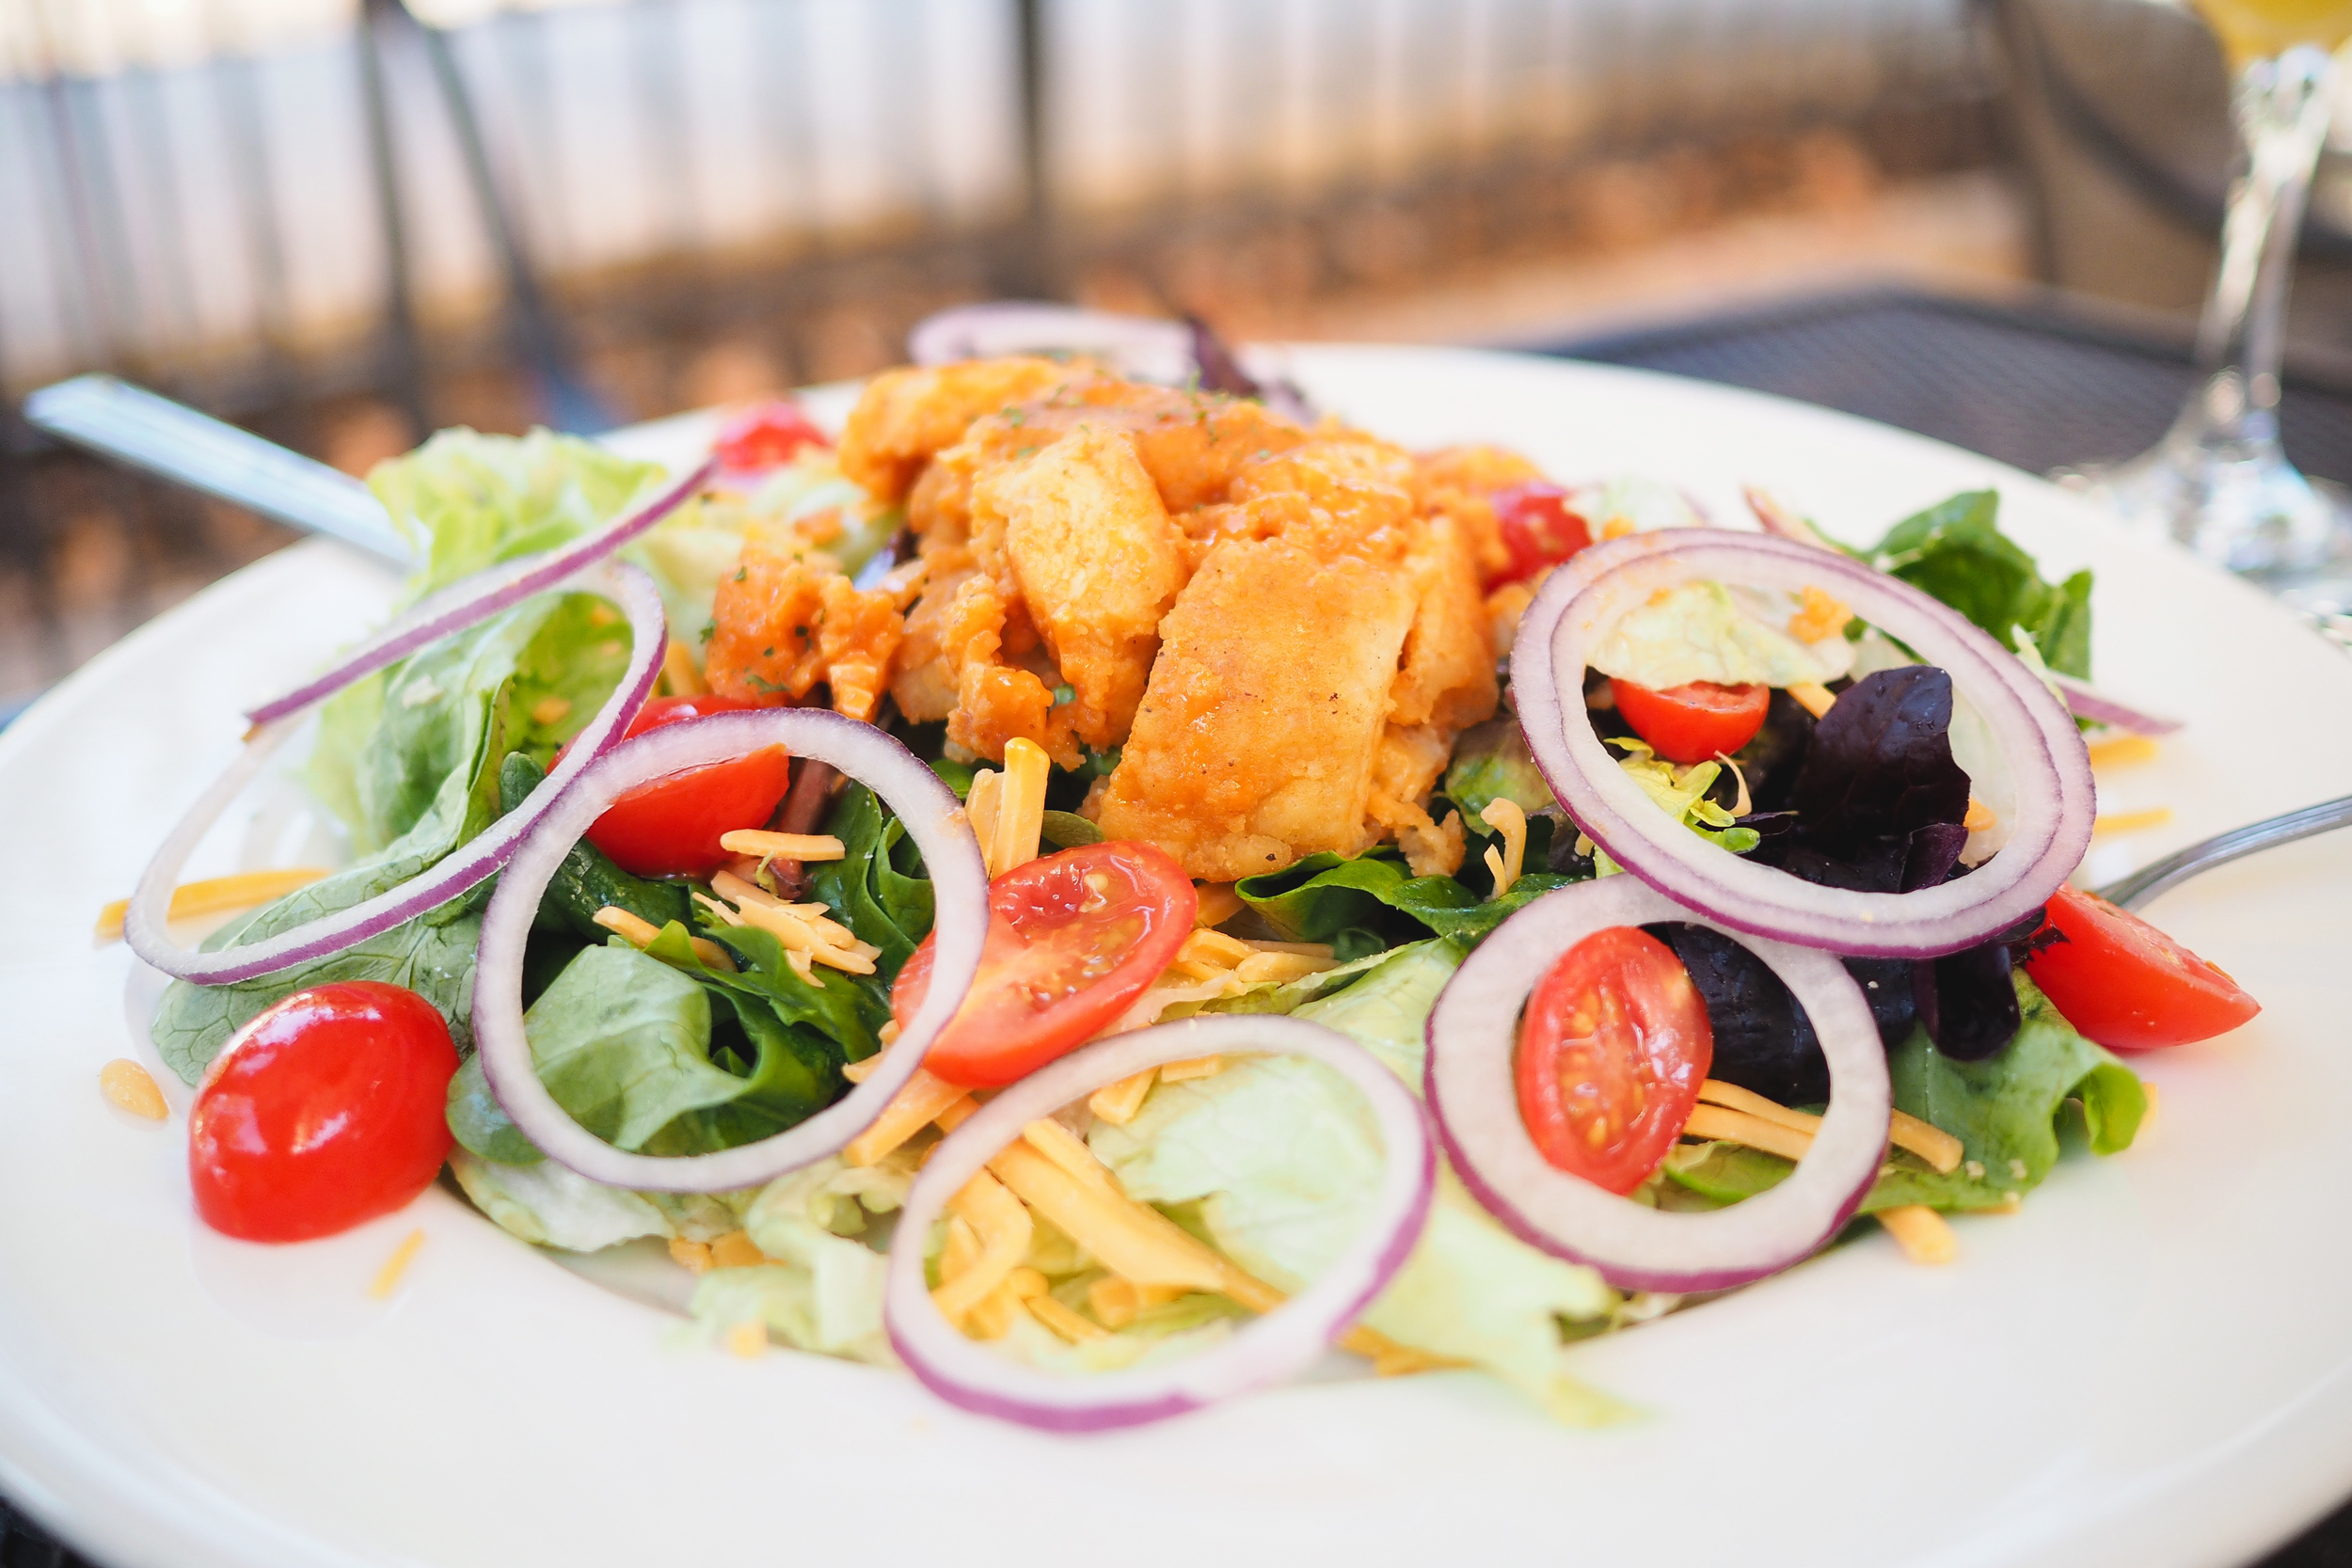 Lake Lawsona Spicy Chicken: Mixed lettuce topped with tender spicy strips of chicken, red onion, cheddar and tomatoes.